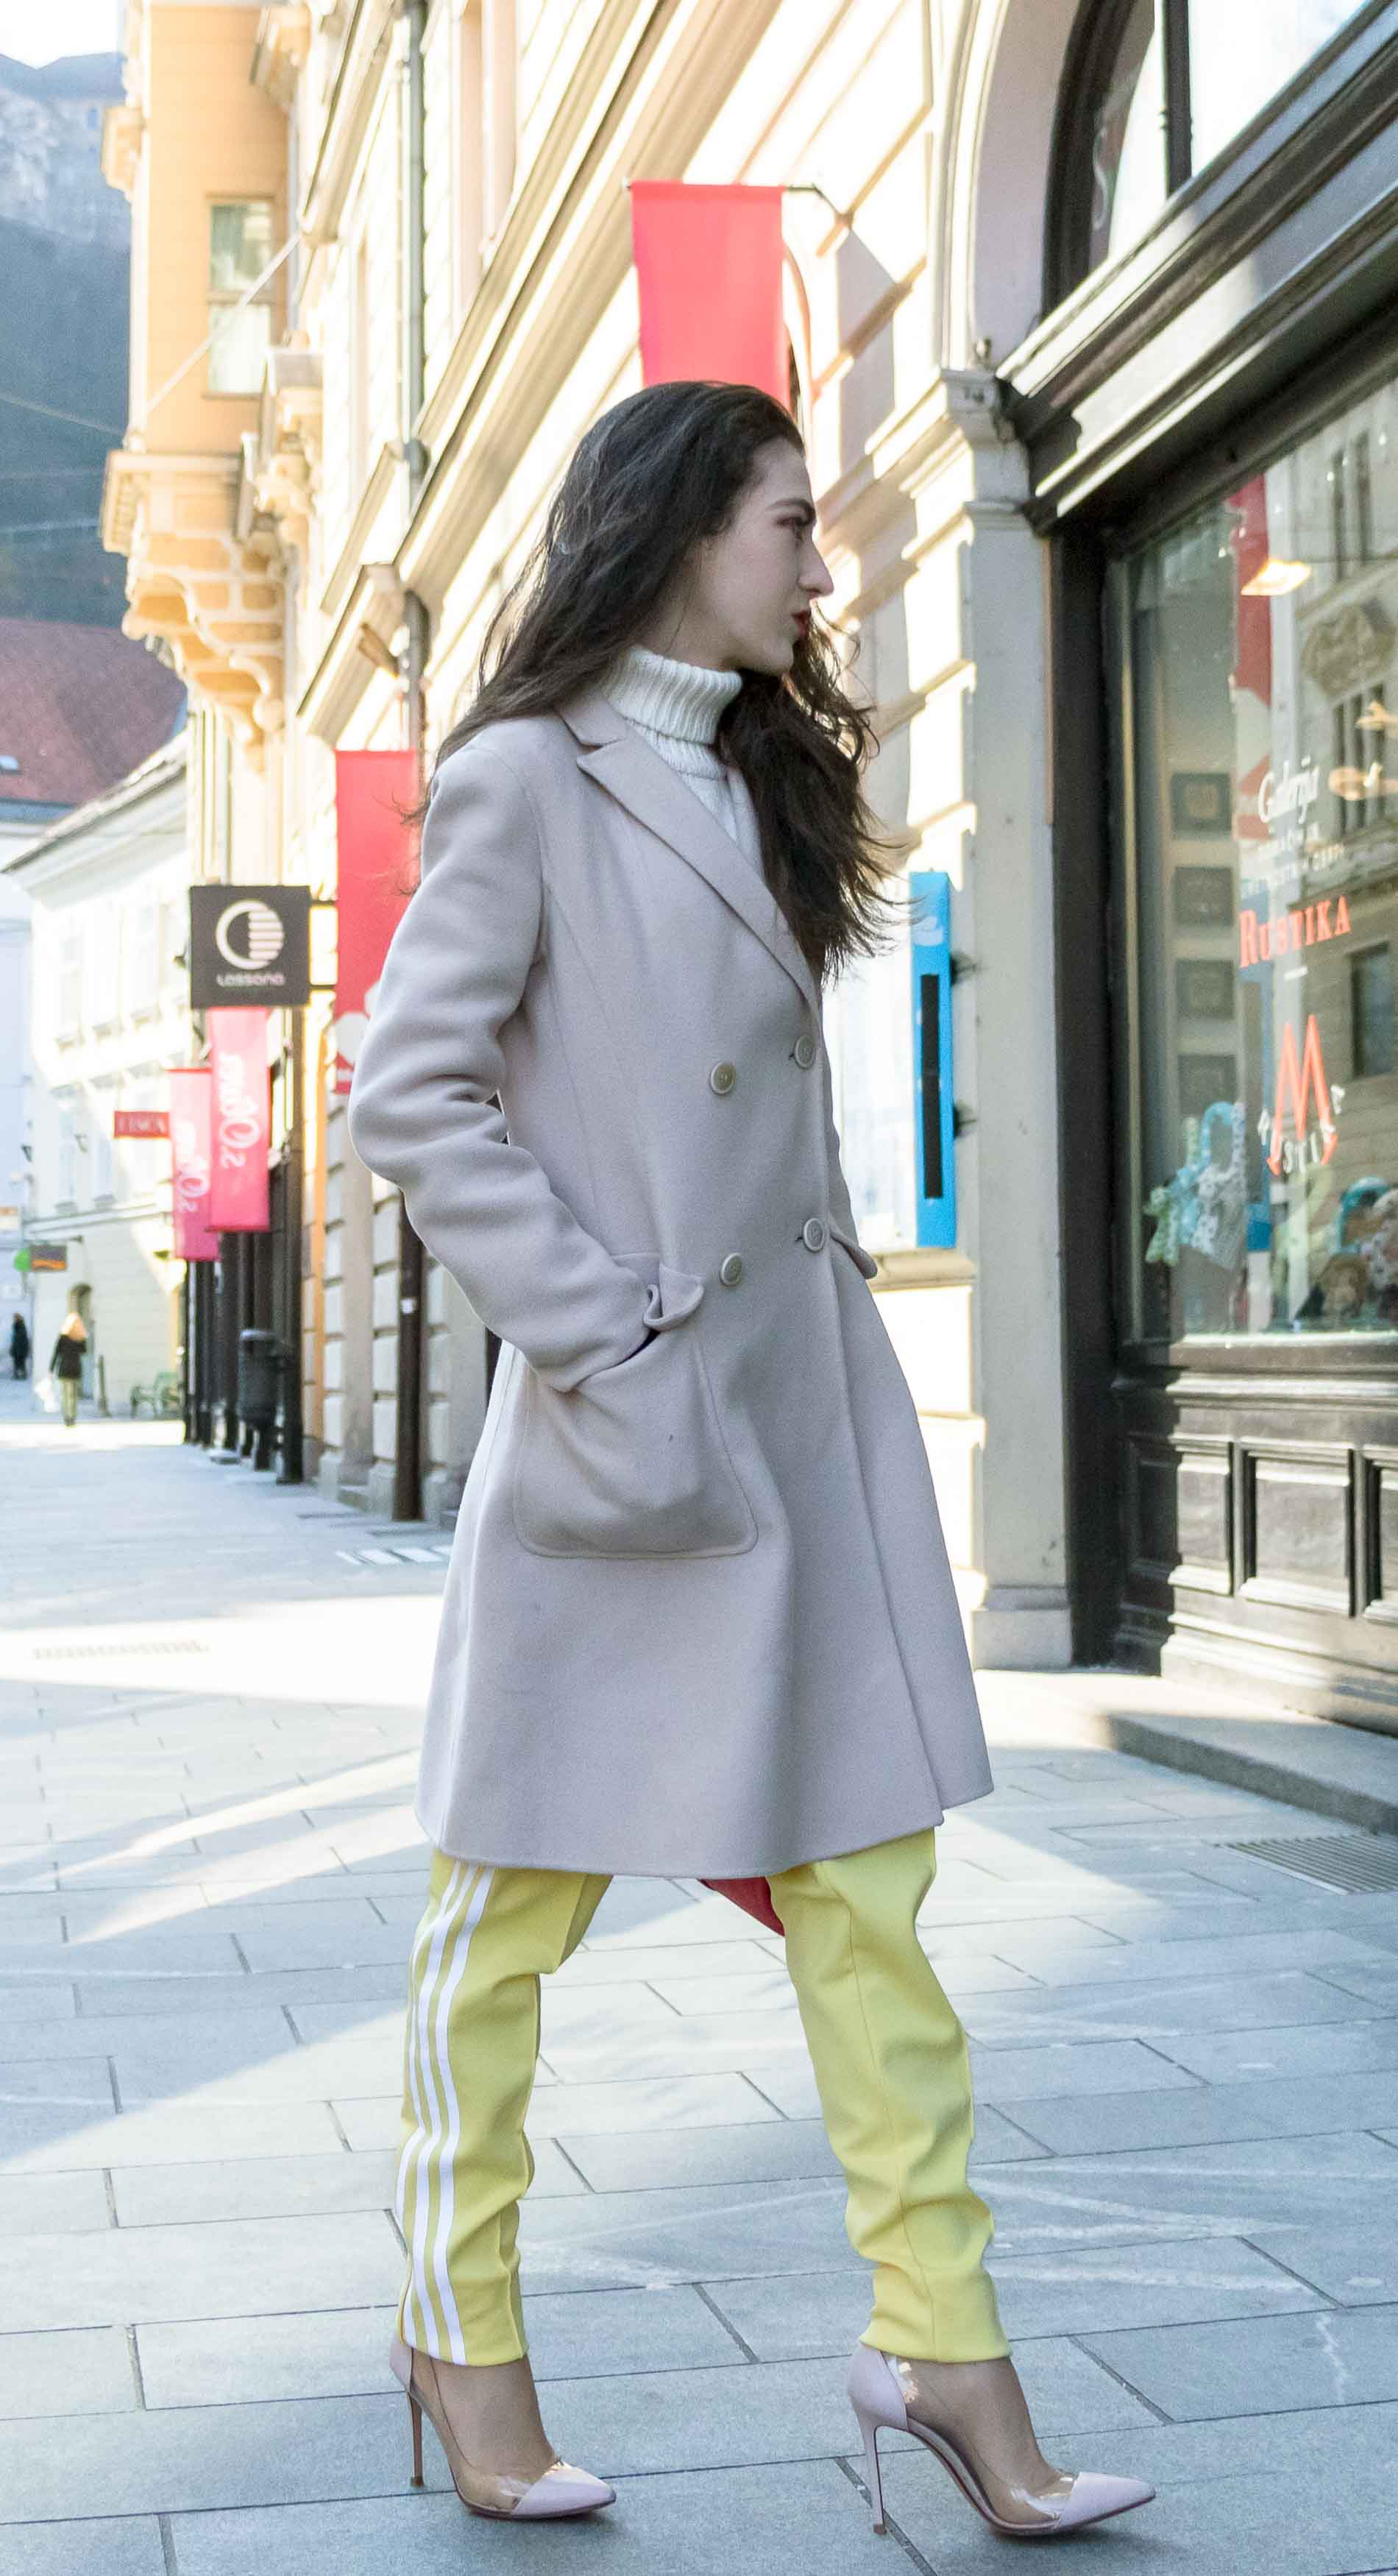 Fashion Blogger Veronika Lipar of Brunette from Wall Street wearing yellow track pants with white stripes from Adidas, white turtleneck knit sweater, off-white pastel double breasted coat from Weekend Max Mara, blush powder transparent plexiglass shoes from Gianvito Rossi, pink top handle bag from See by Chloe while walking on the street in Ljubljana